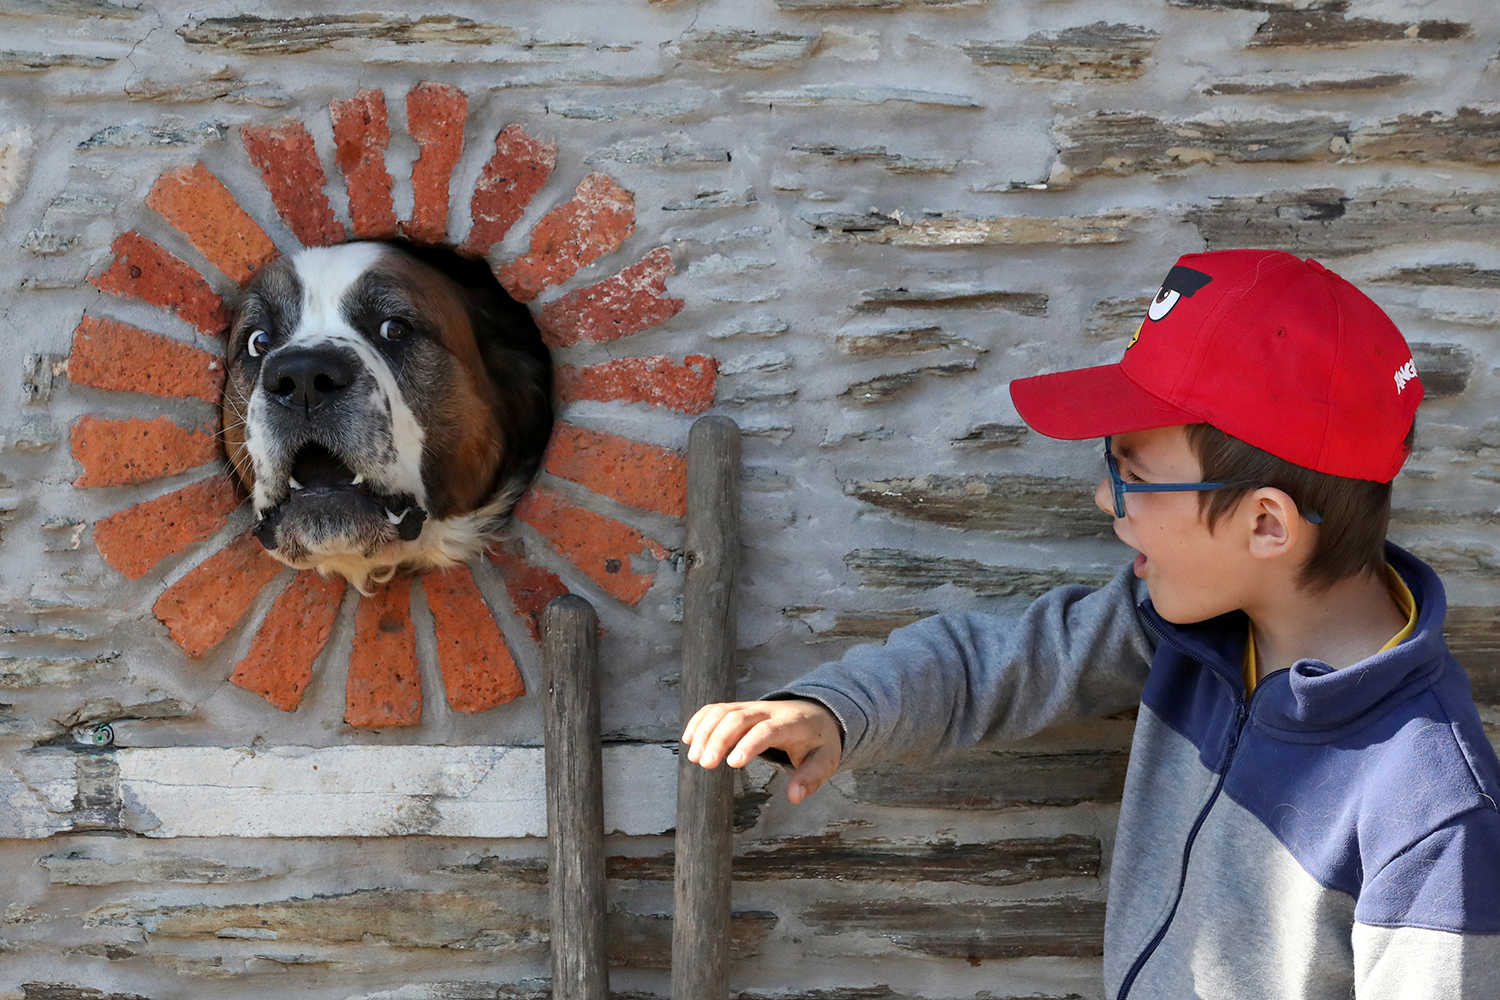 A boy attempts to pet a dog that put its face through a hole in a house's wall in the village of Alle-sur-Semois, Belgium, on April 25. Yves Herman/Reuters